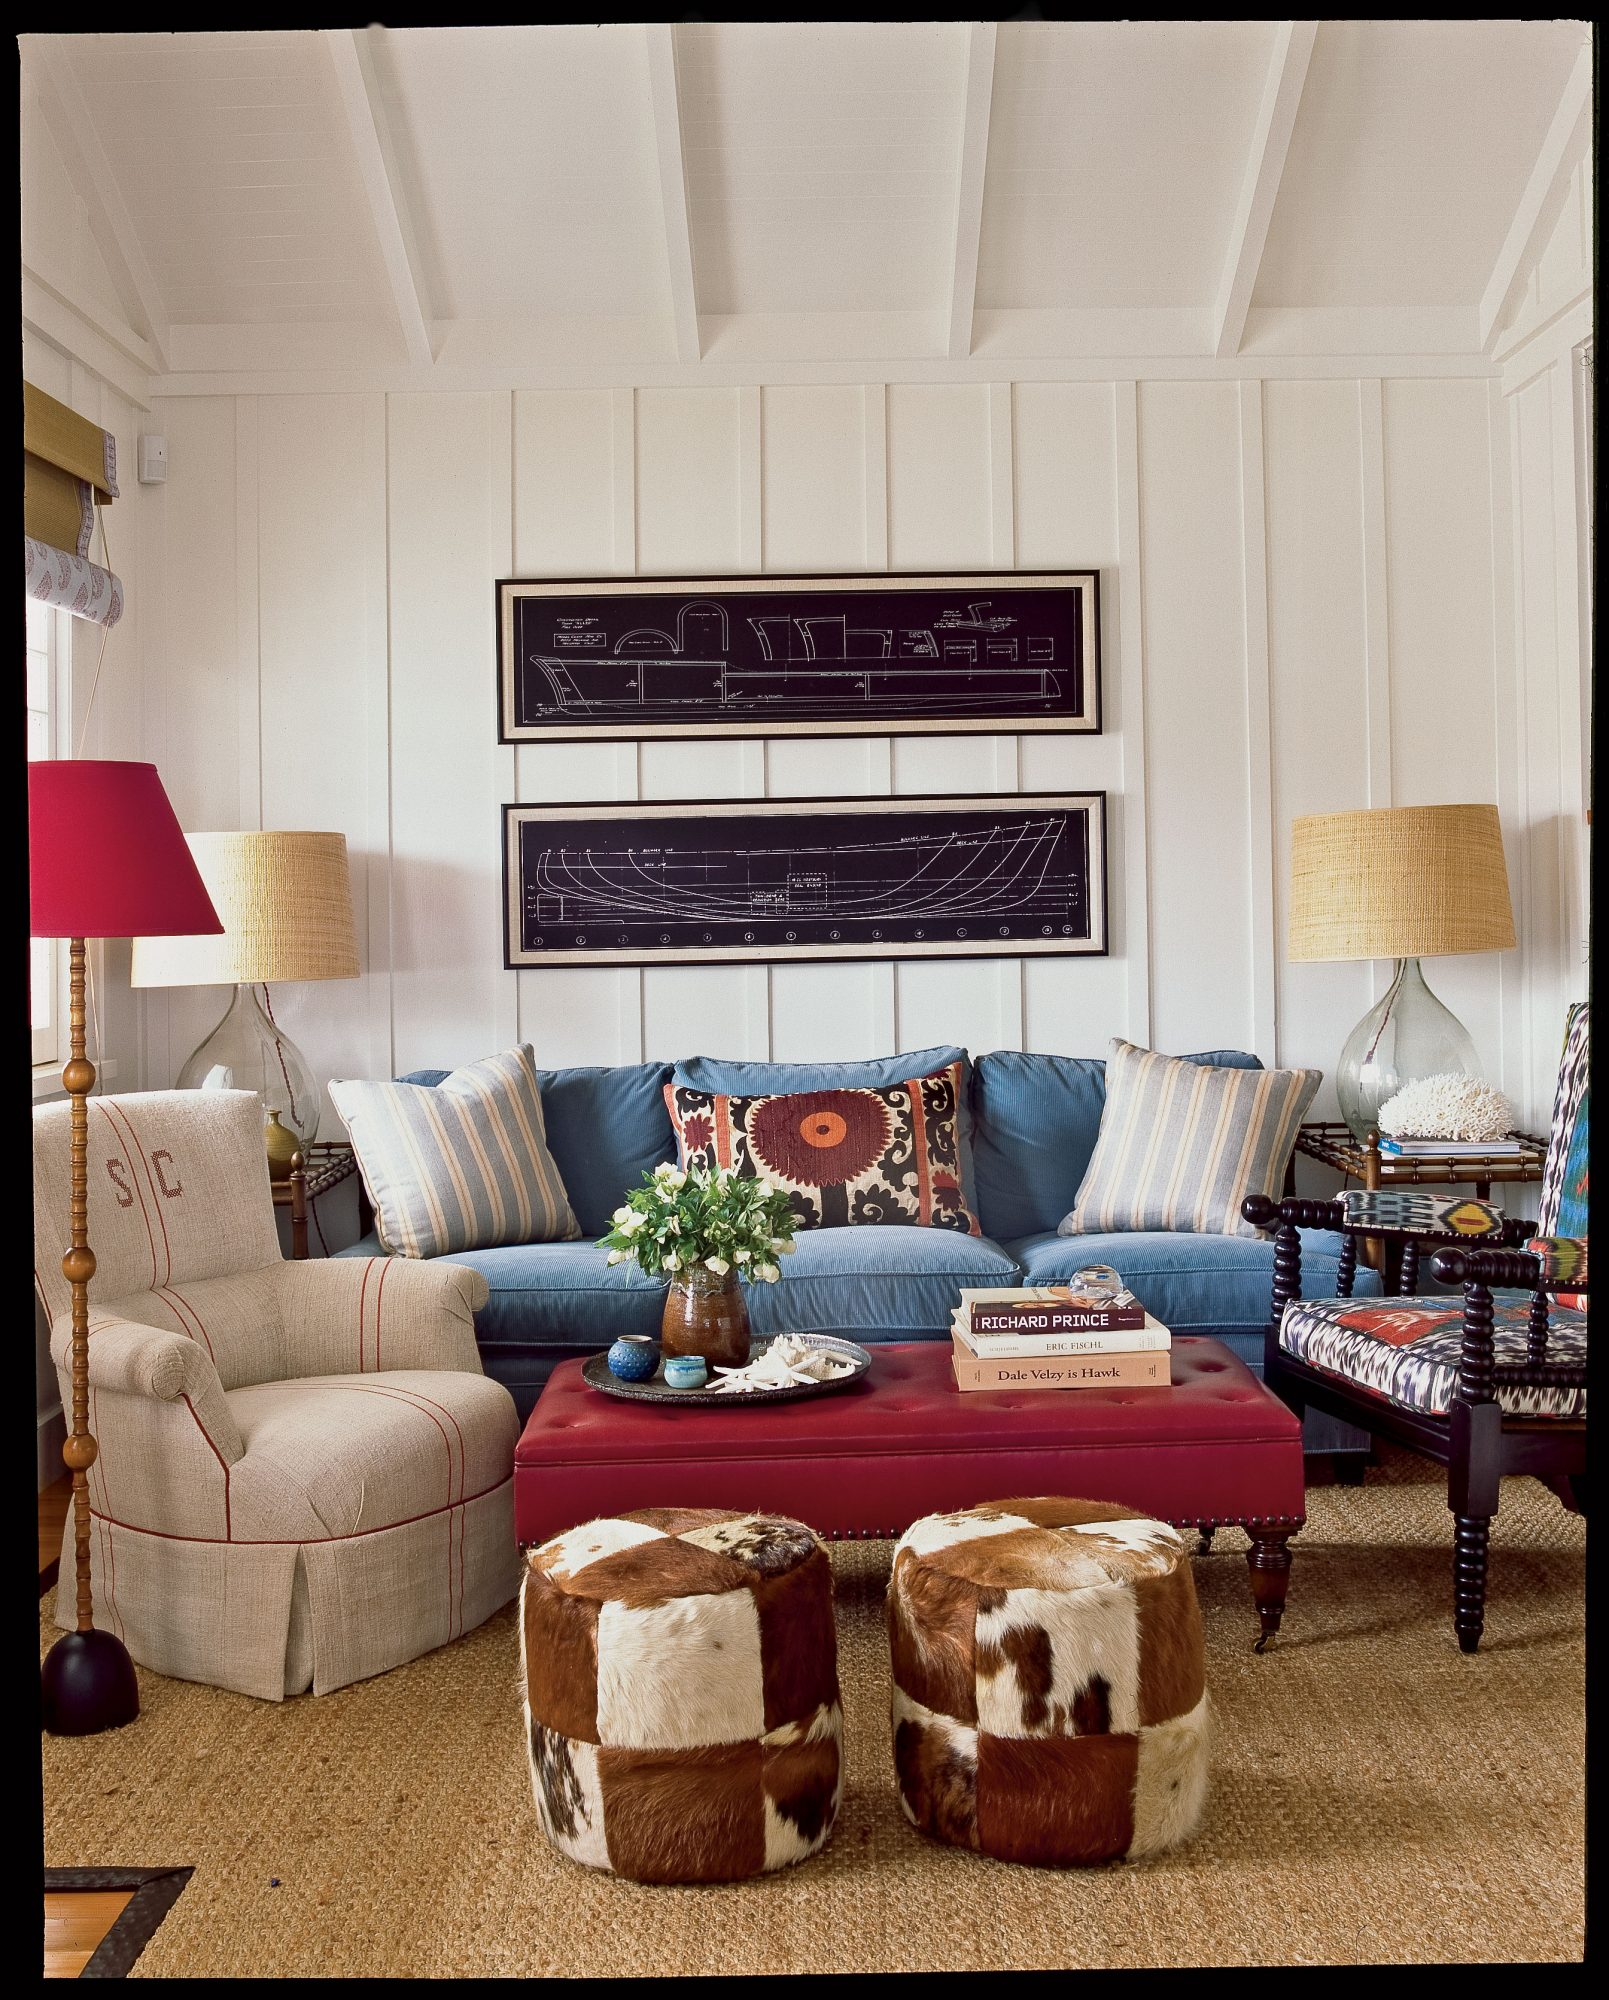 The living room was decorated with generous upholstered pieces to ensure maximum comfort. The corduroy, leather, and vintage grain sack upholstery encourages lounging, while batik prints in rich reds and marine blues provide an exotic beat.